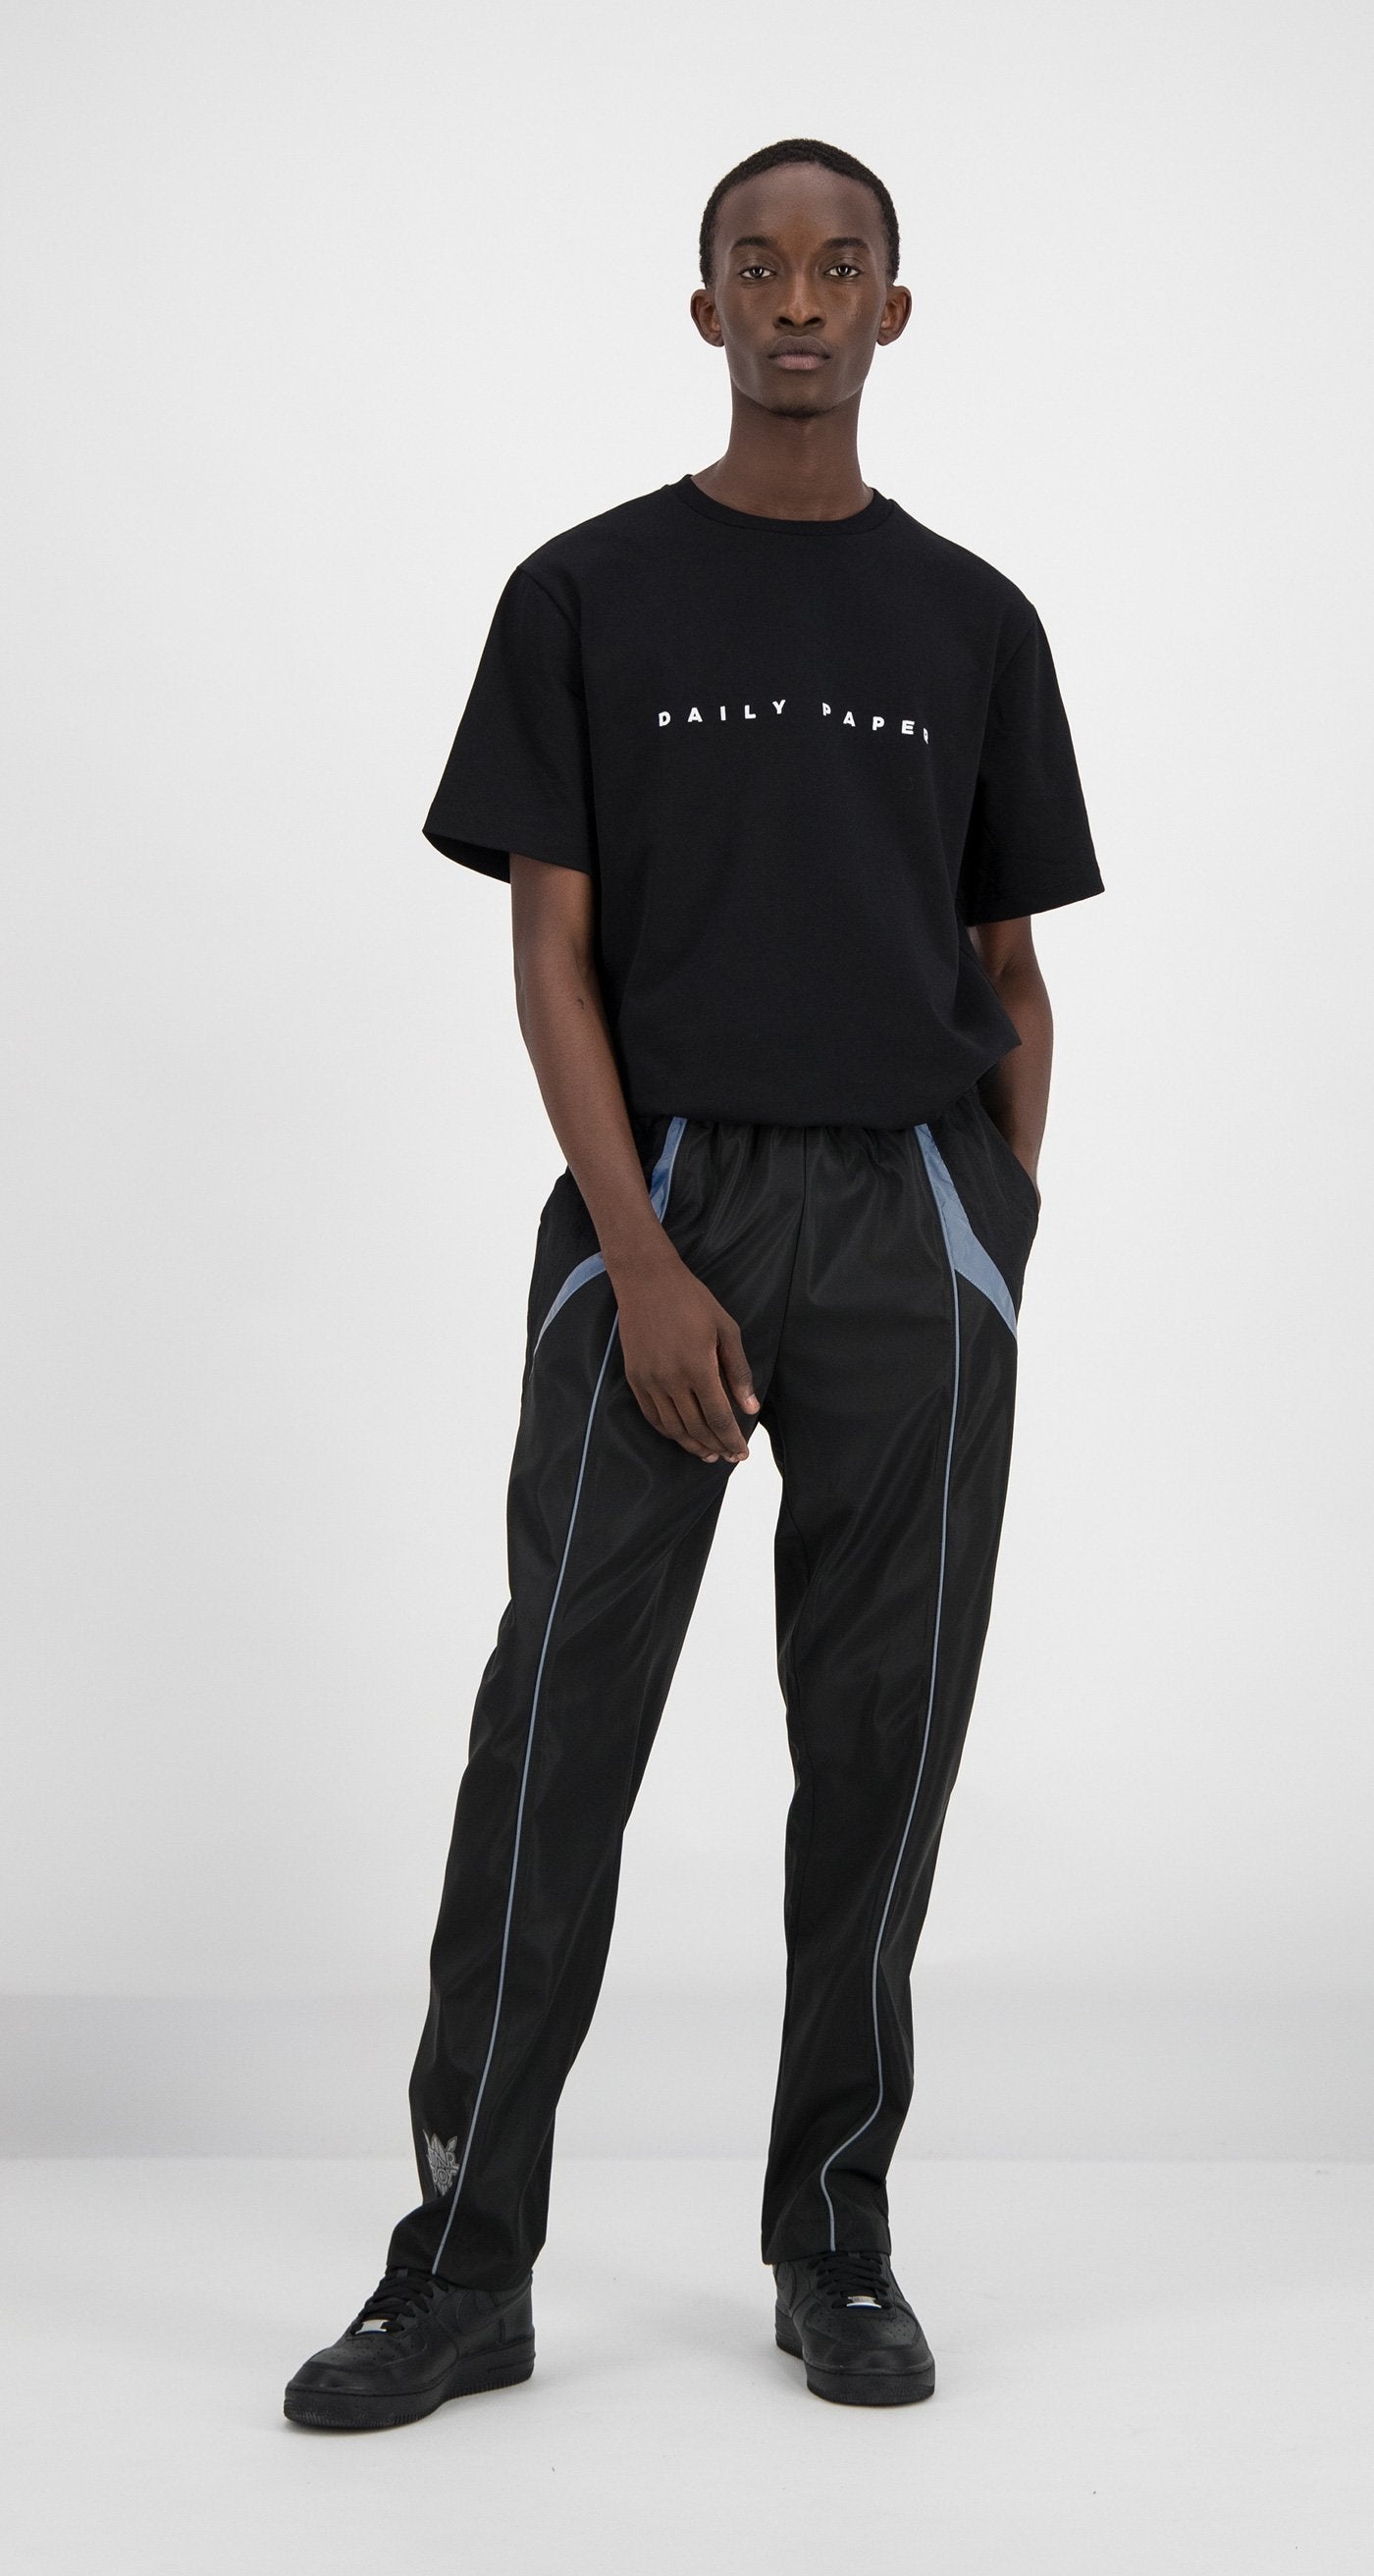 Daily Paper - Daily Paper x STARBOY Black Guka Pants Men